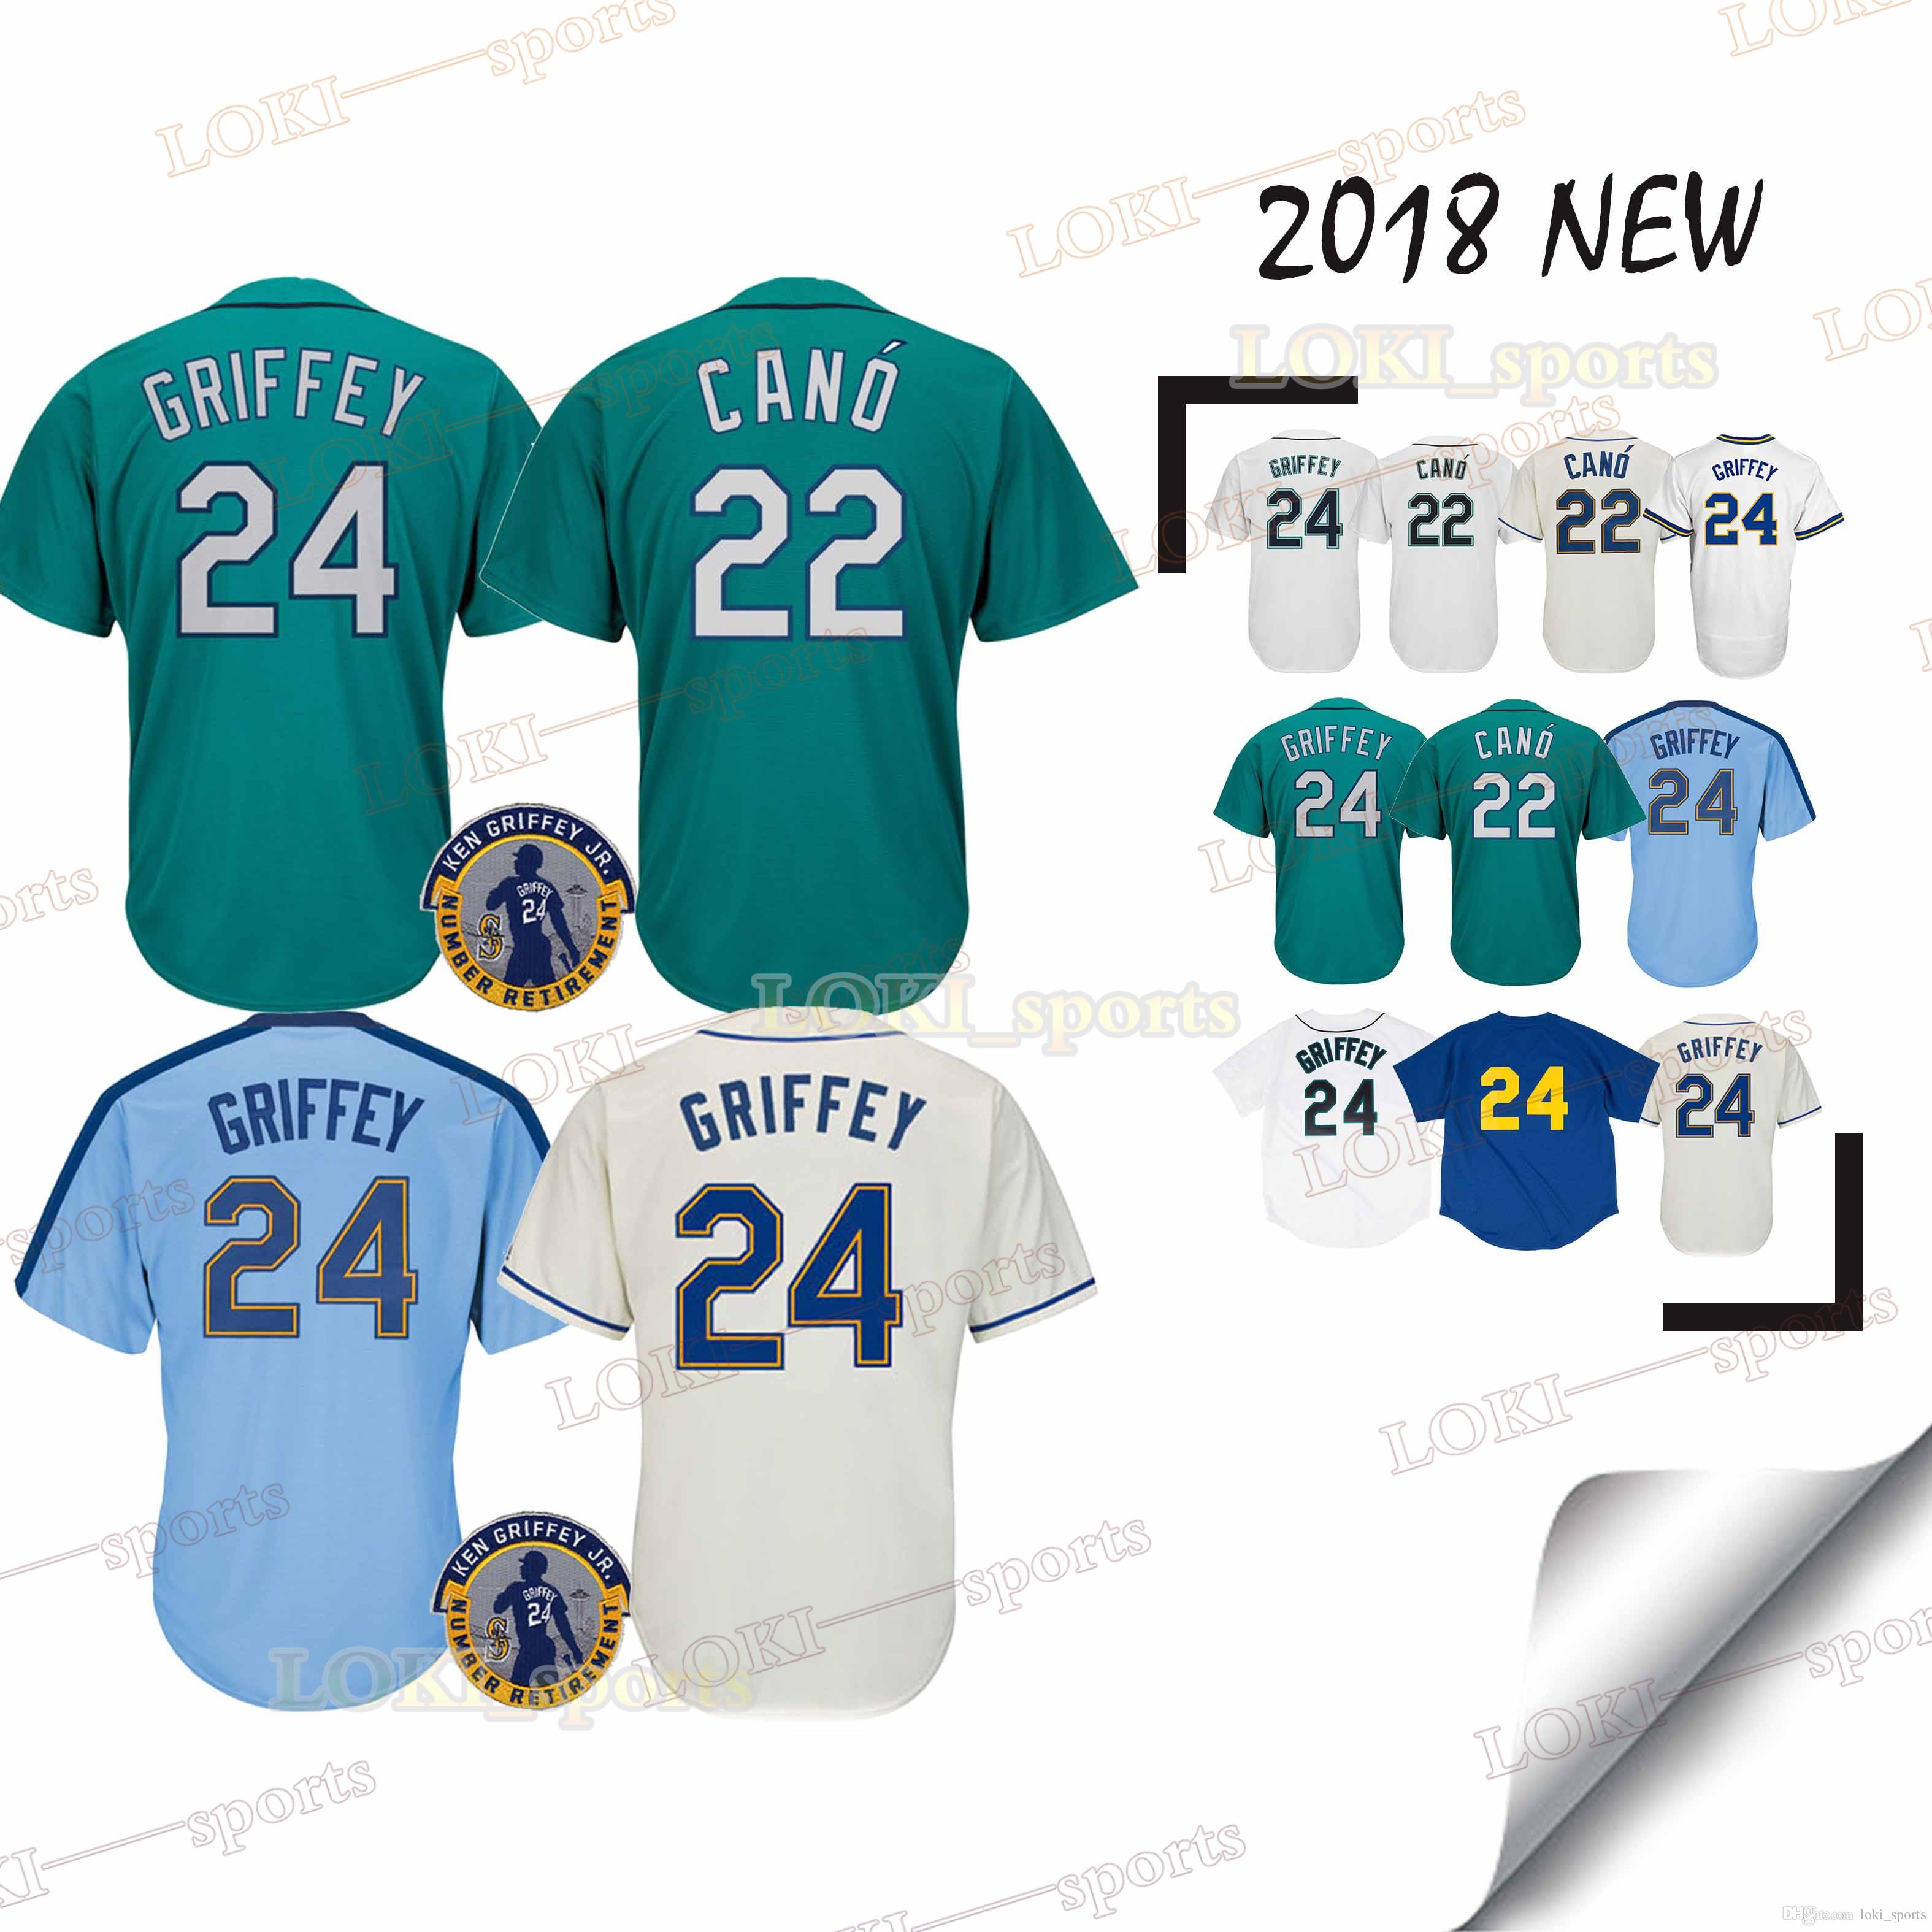 save off 99461 dfdc4 Seattle Mariners jerseys 22 Robinson Cano 18/19 New 100% Stitched superior  quality Top MEN Jersey 2019